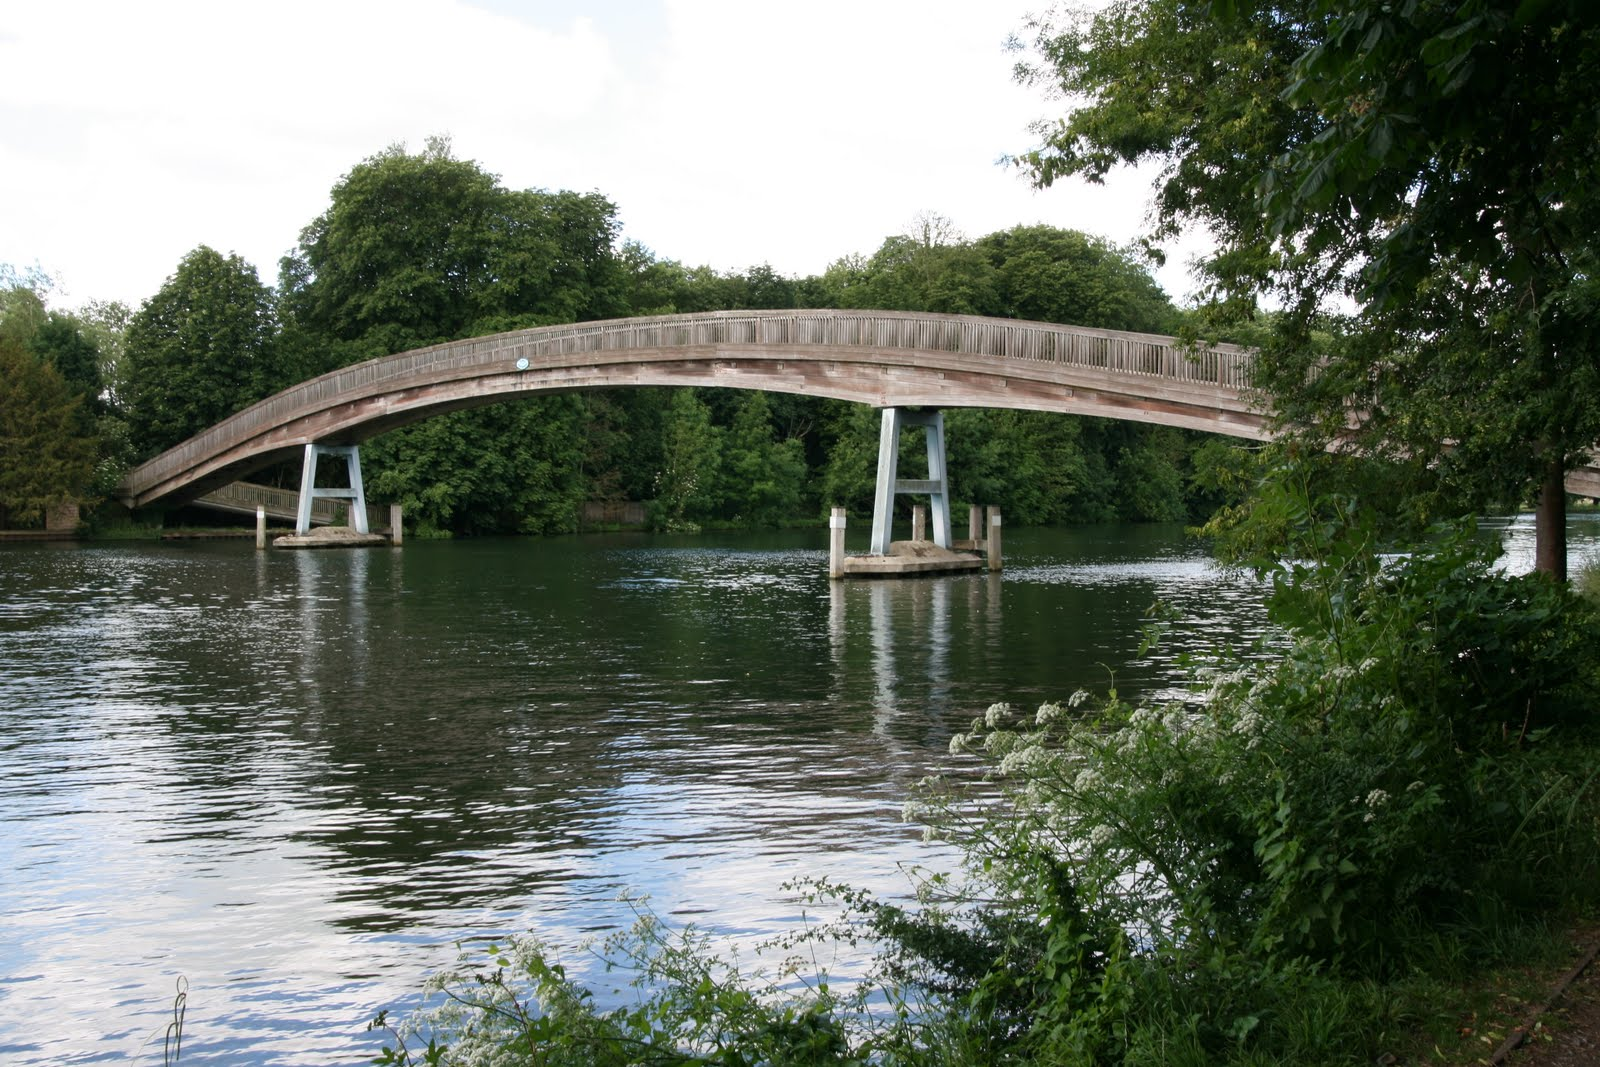 1006 003 Marlow Circular, England Bridge across the Thames